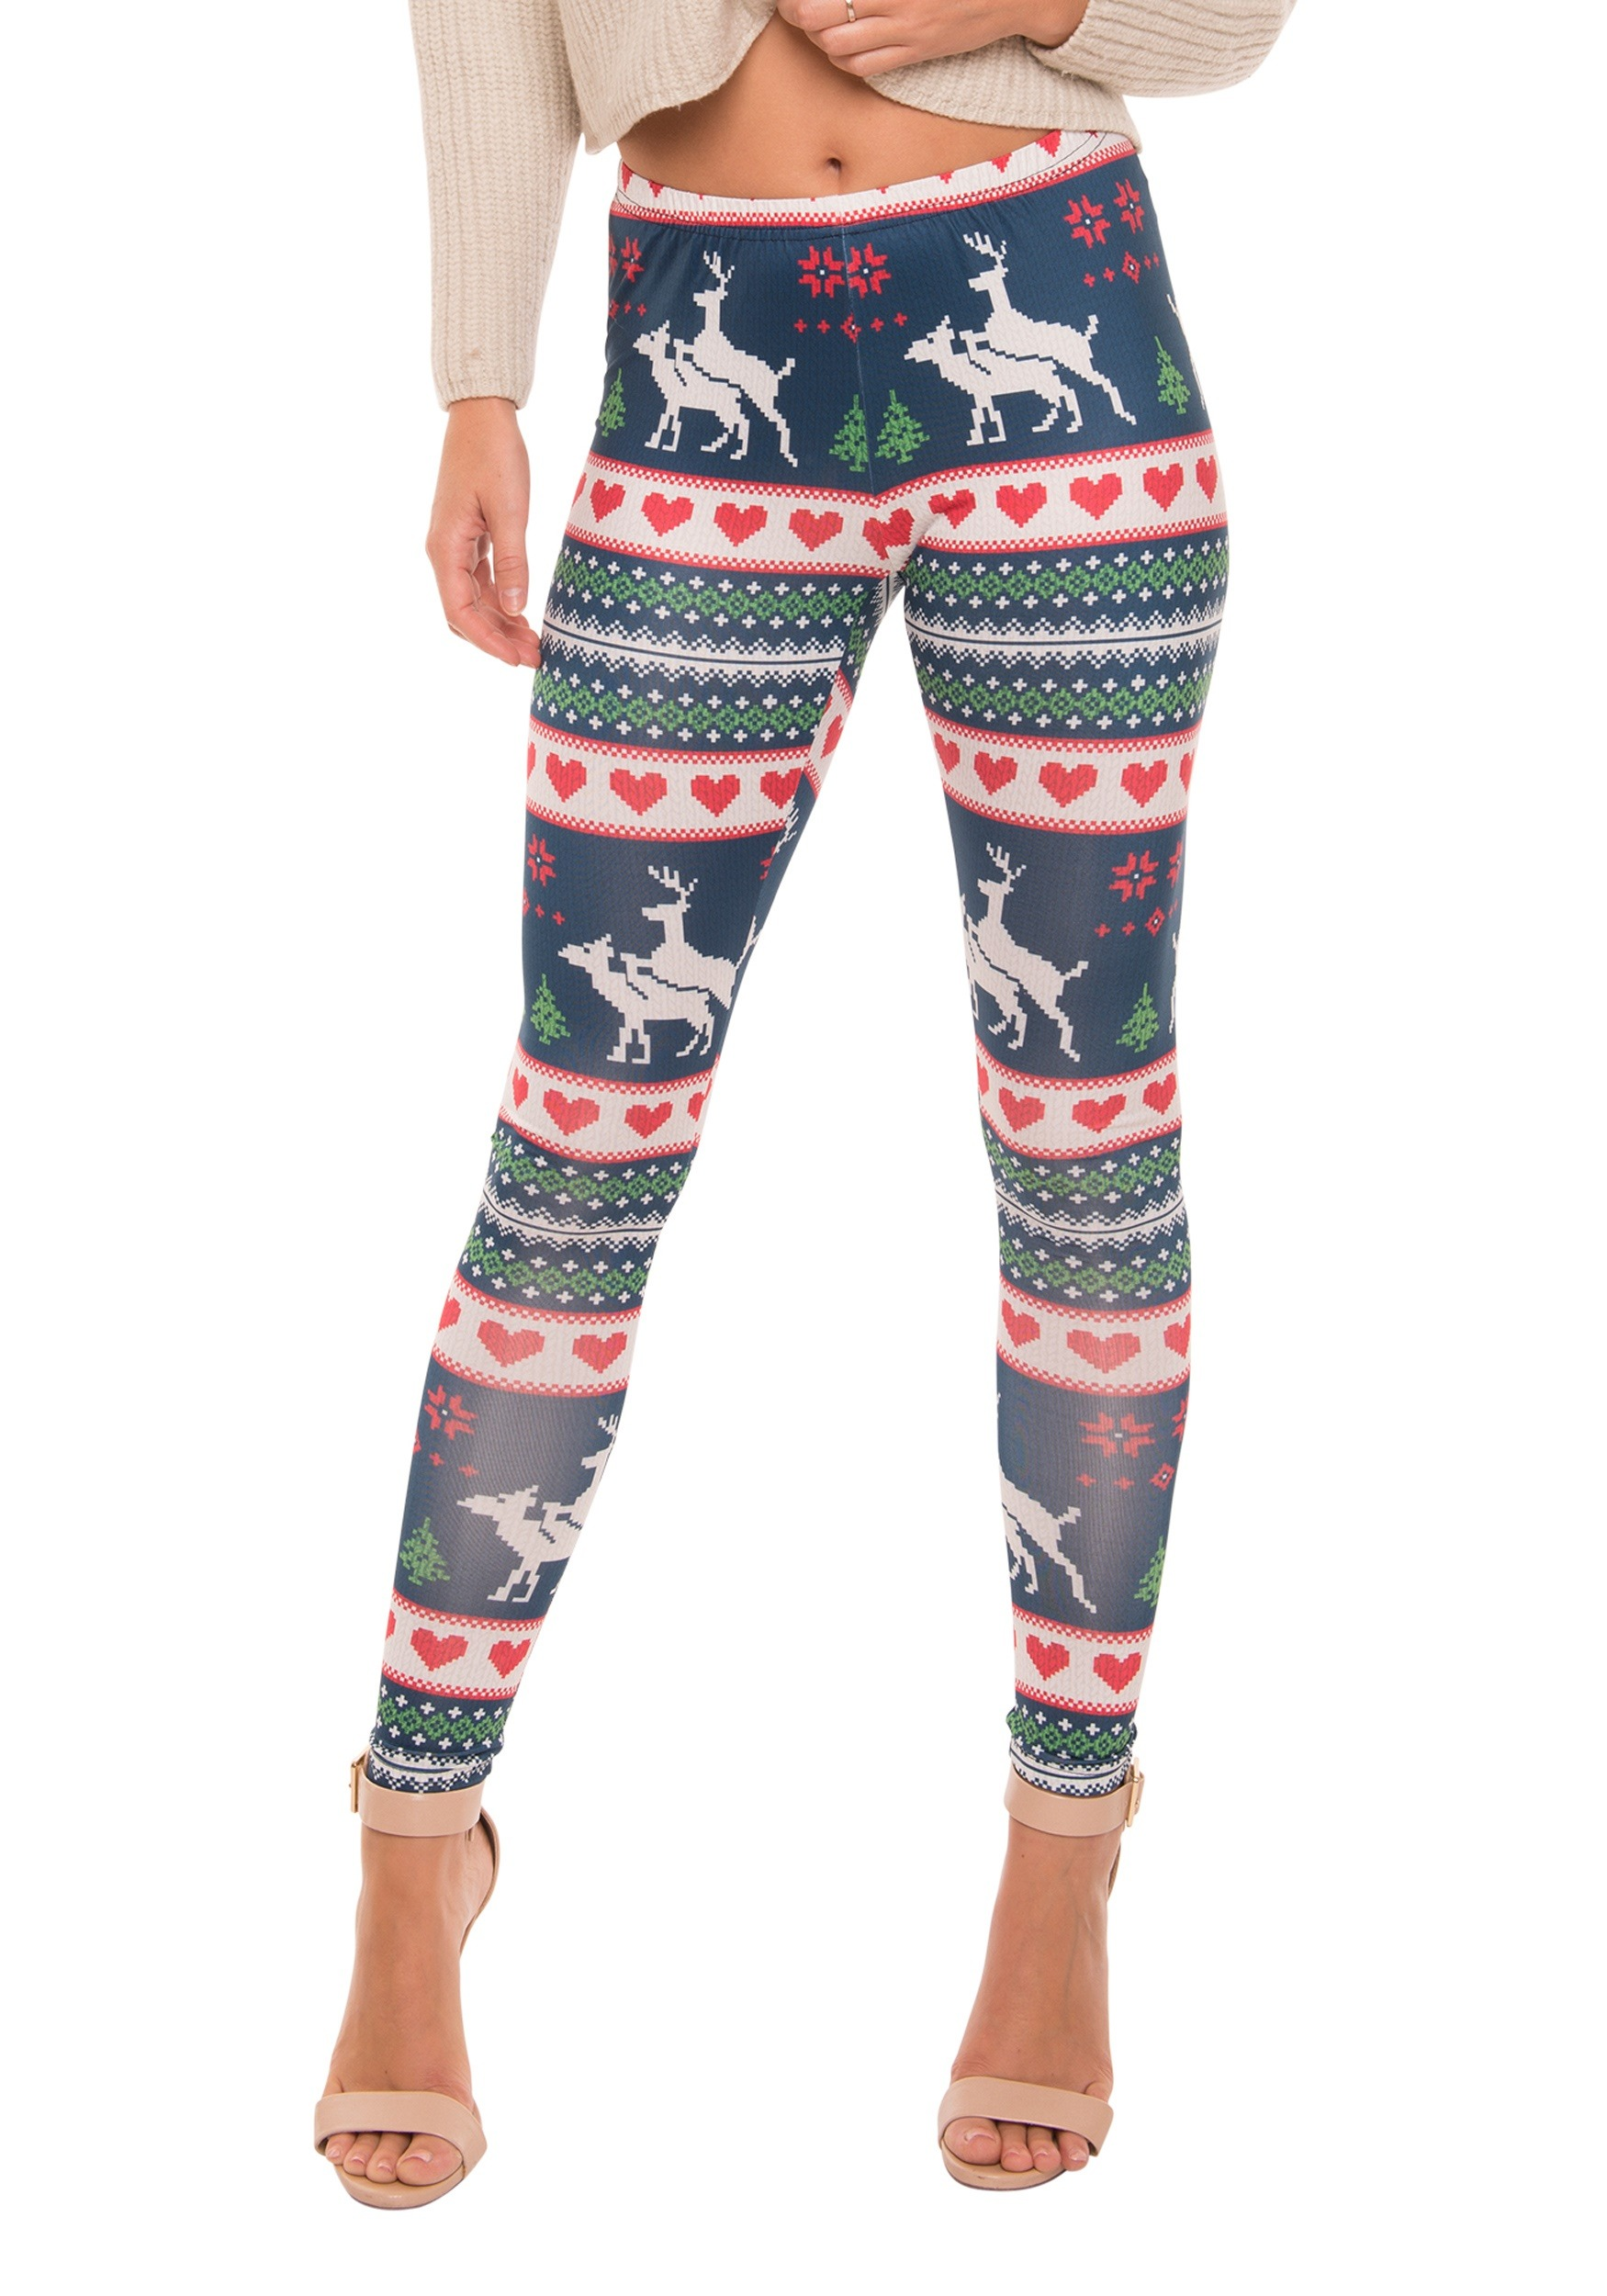 7124458aeb4ca7 Humping Reindeer Ugly Christmas Sweater Leggings